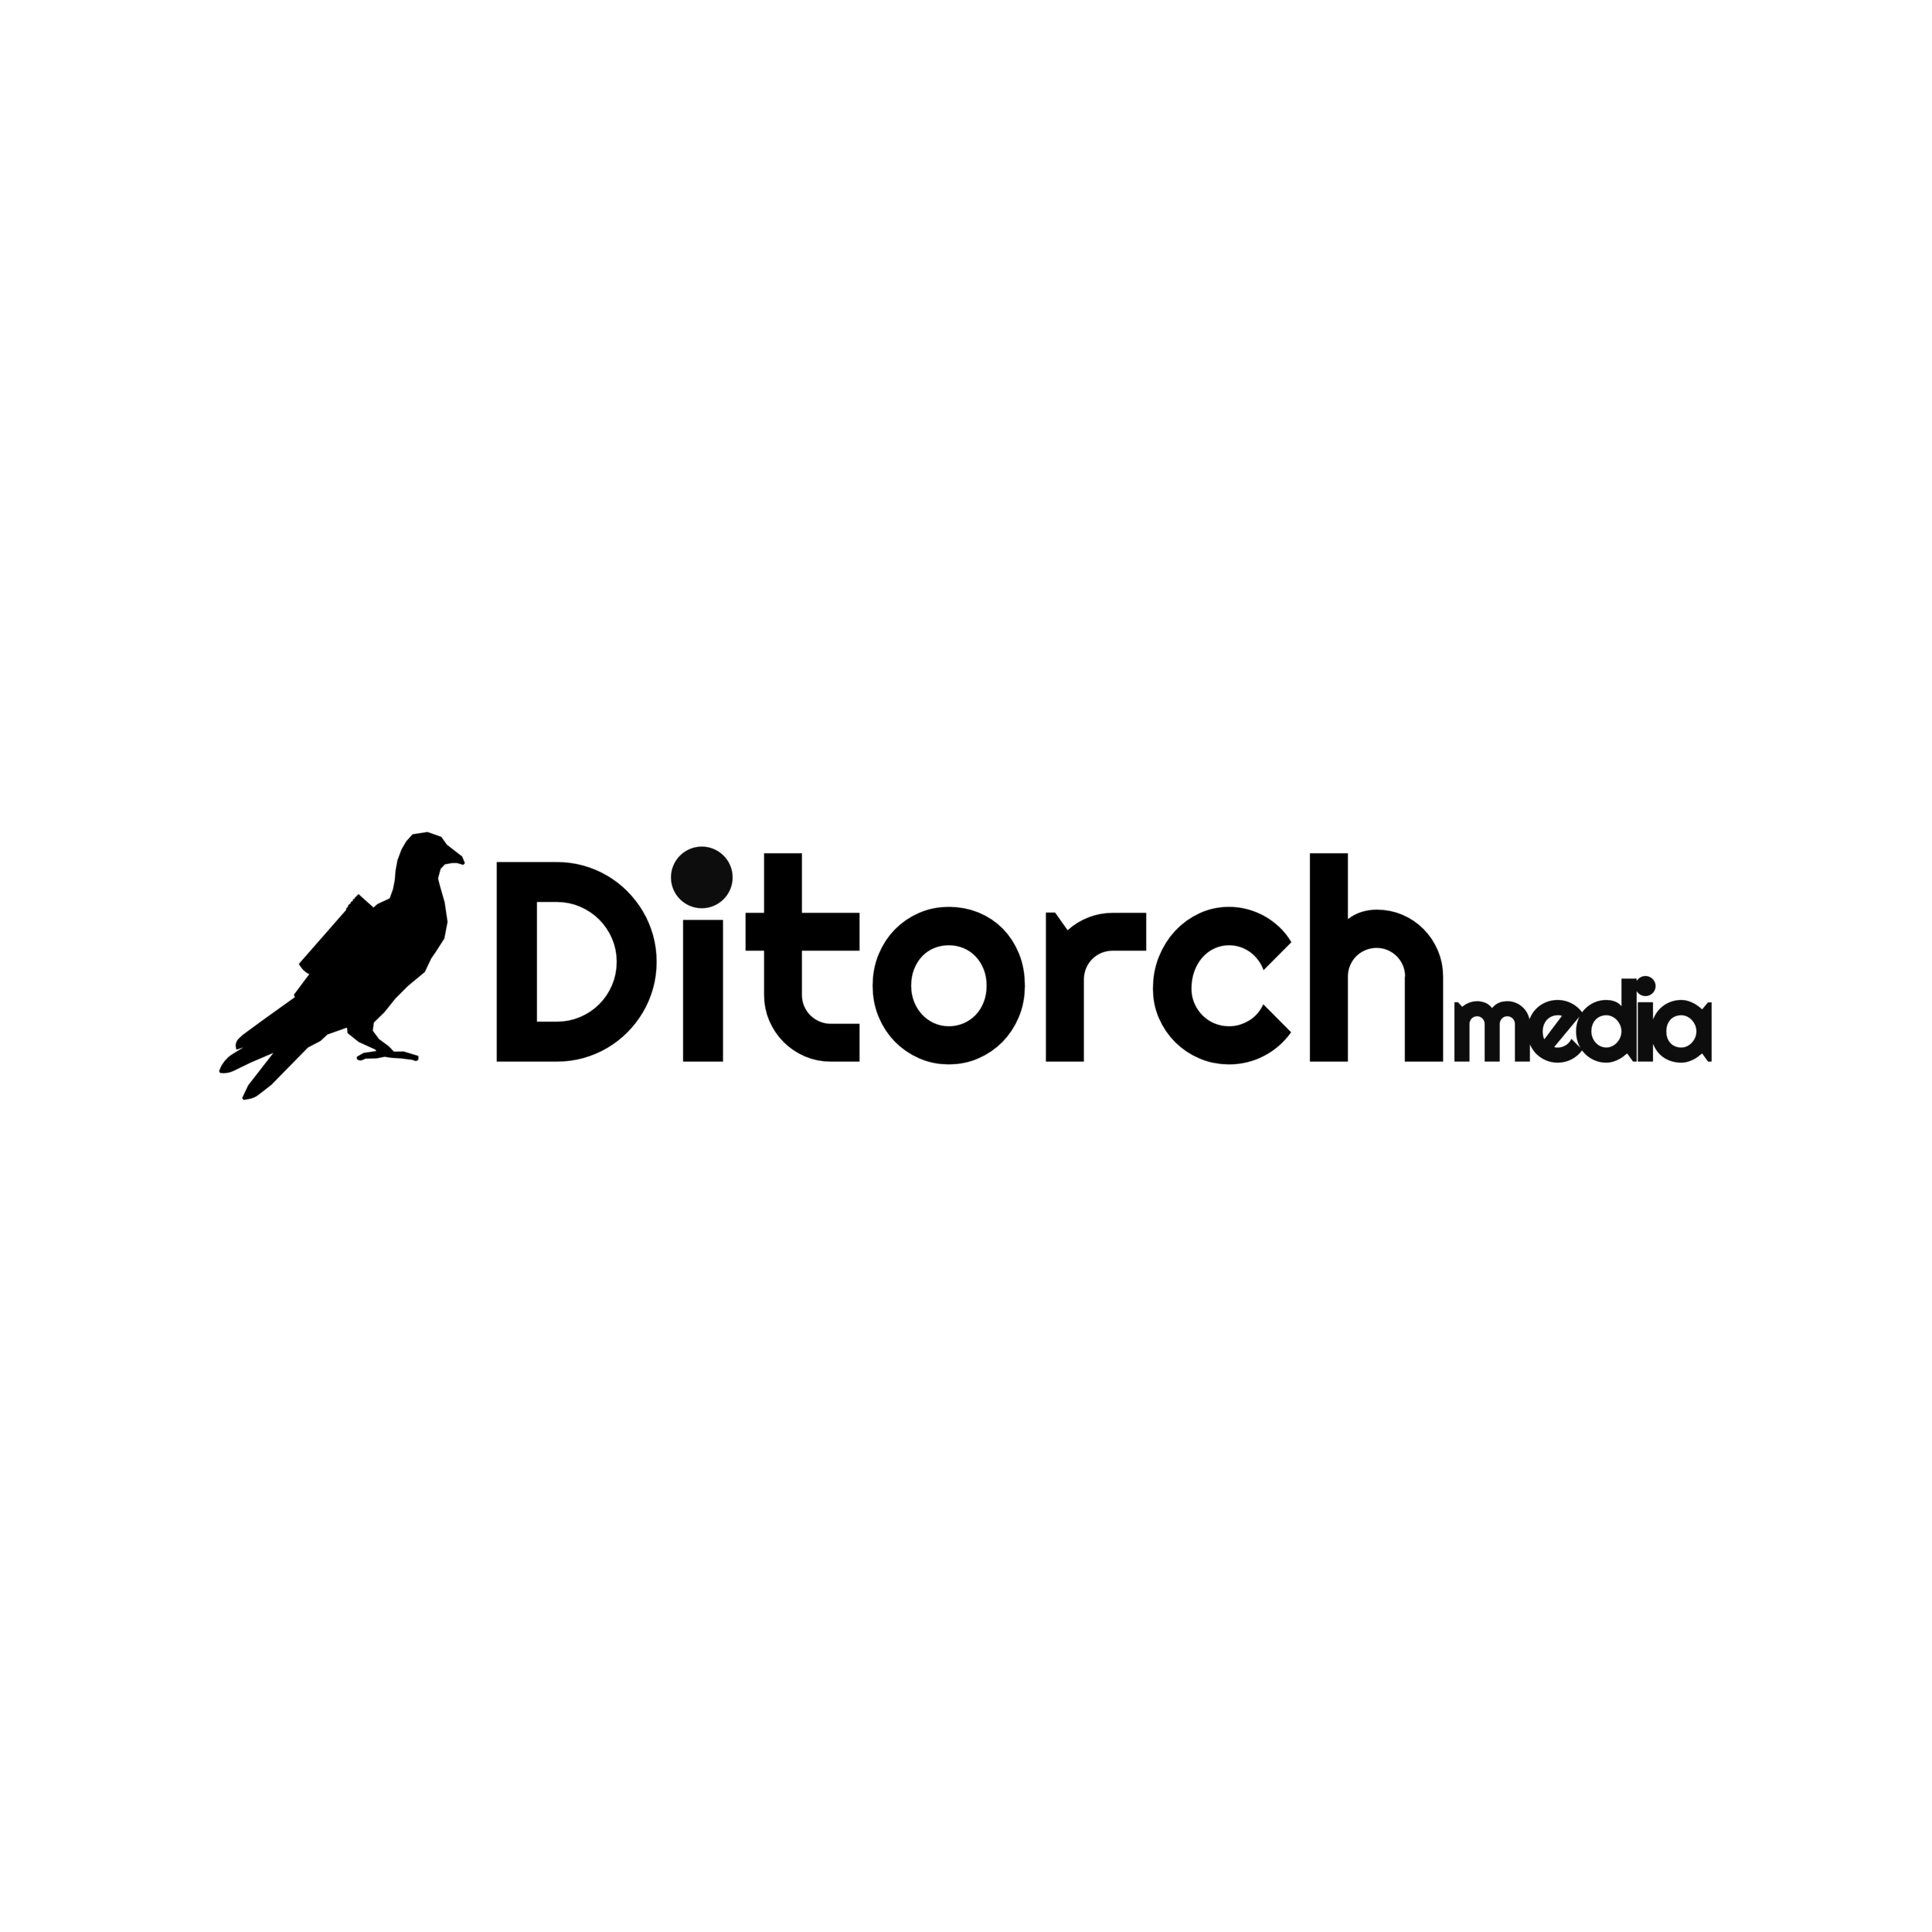 ditorch media square black (2).png